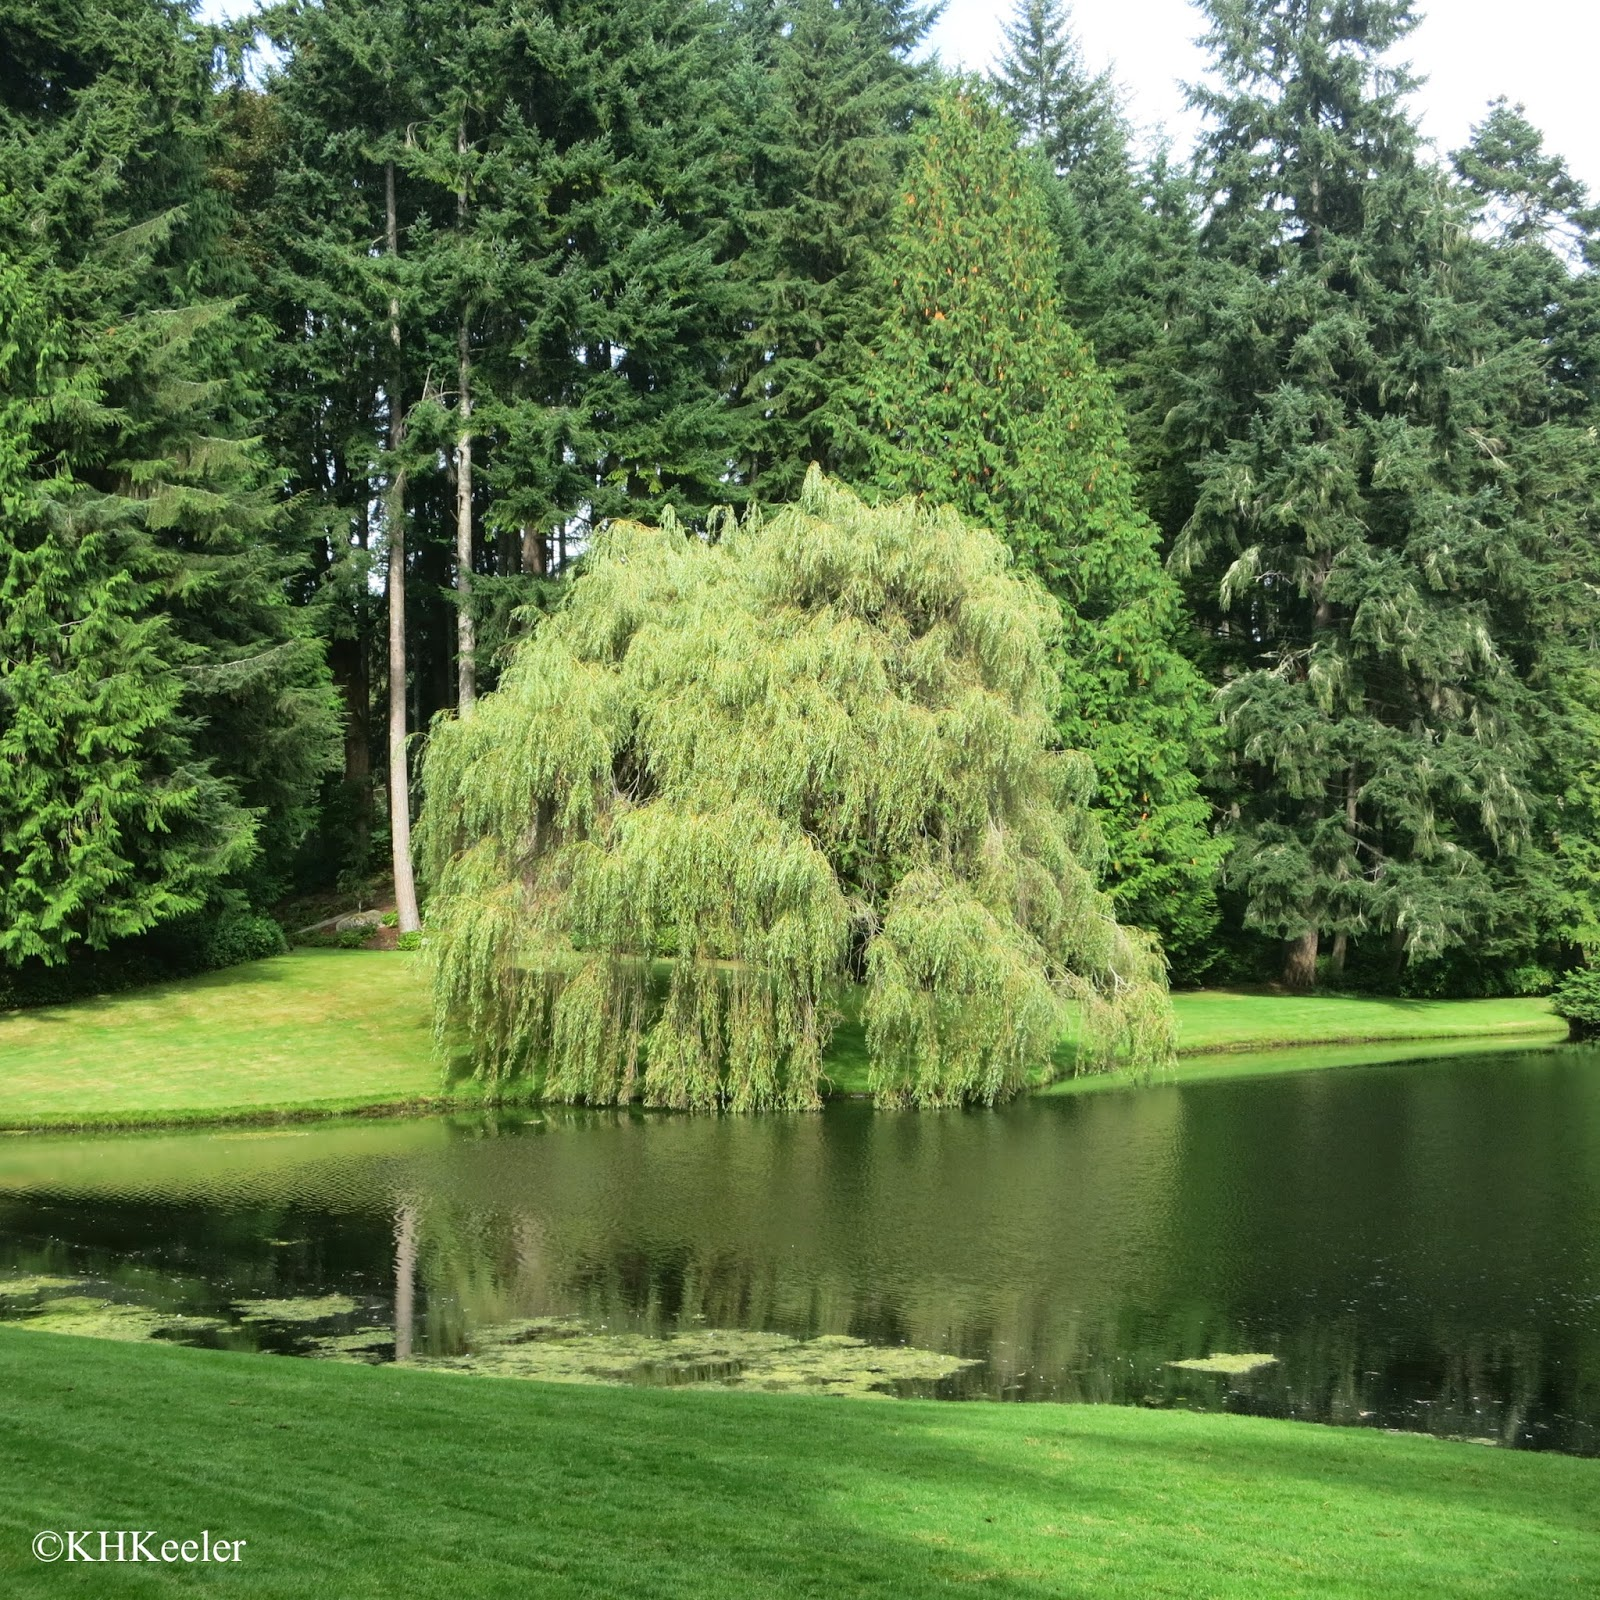 Chinese weeping willow, Salix babylonica